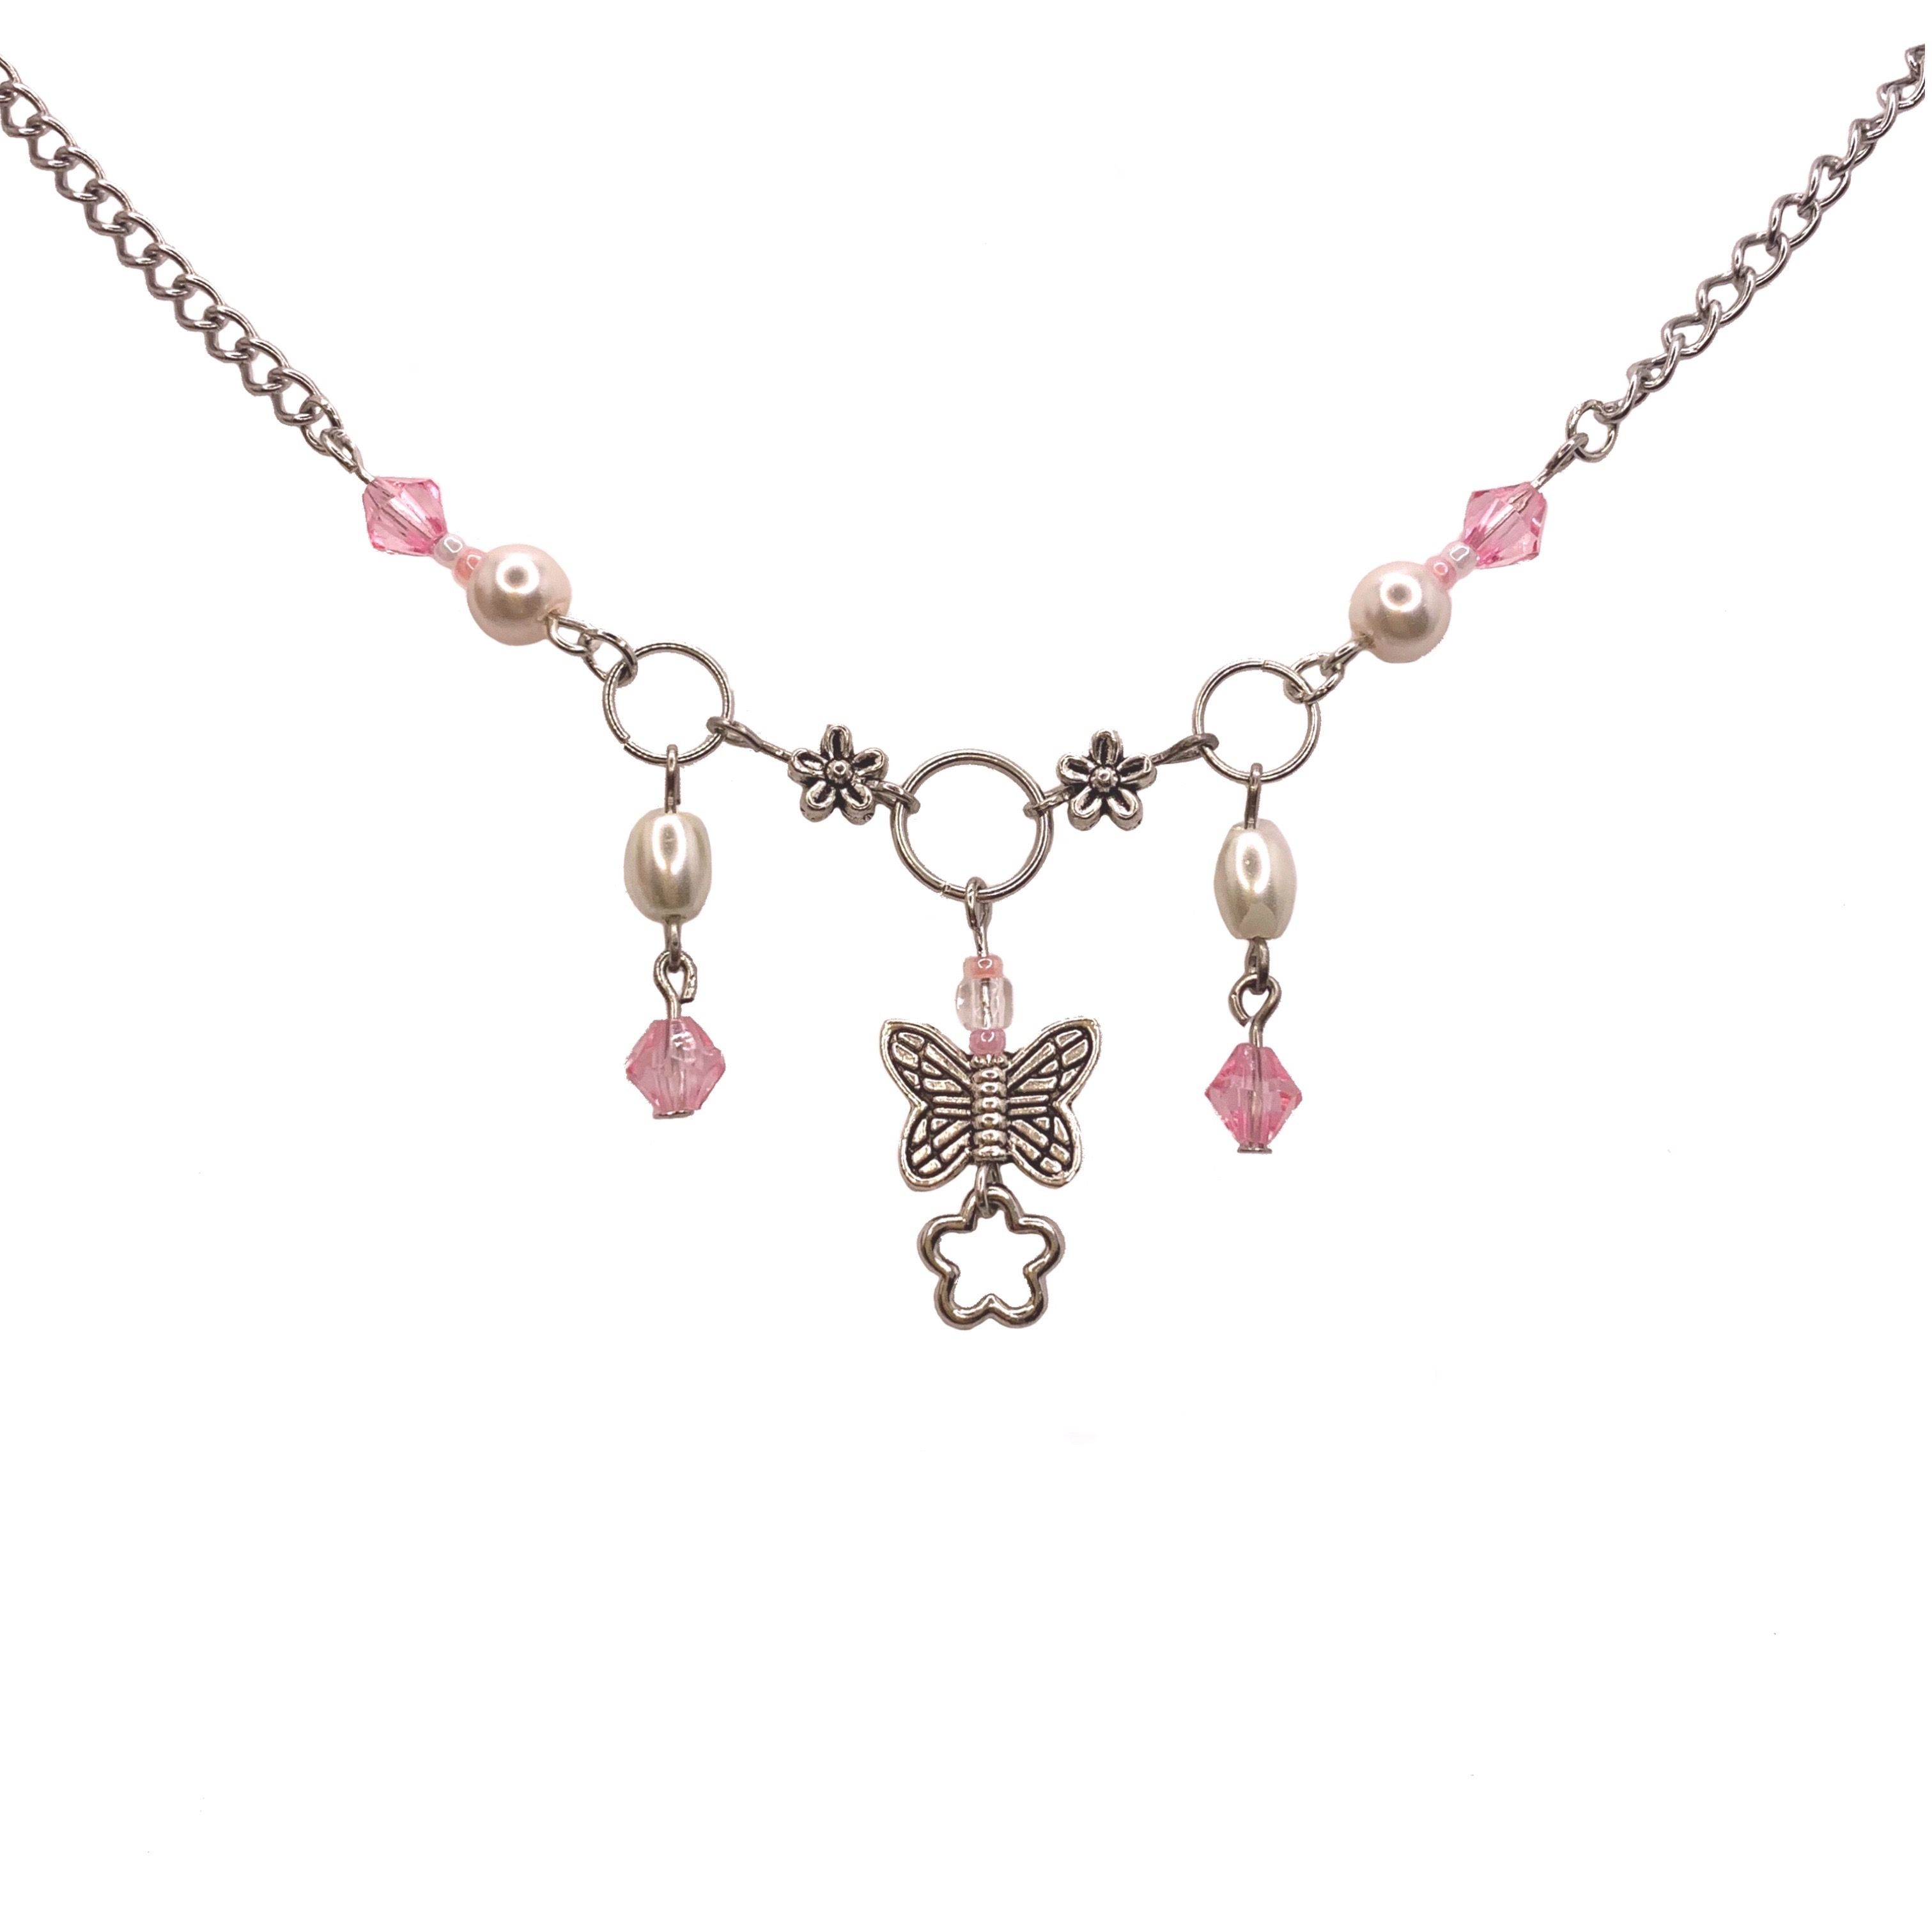 the clutter necklace